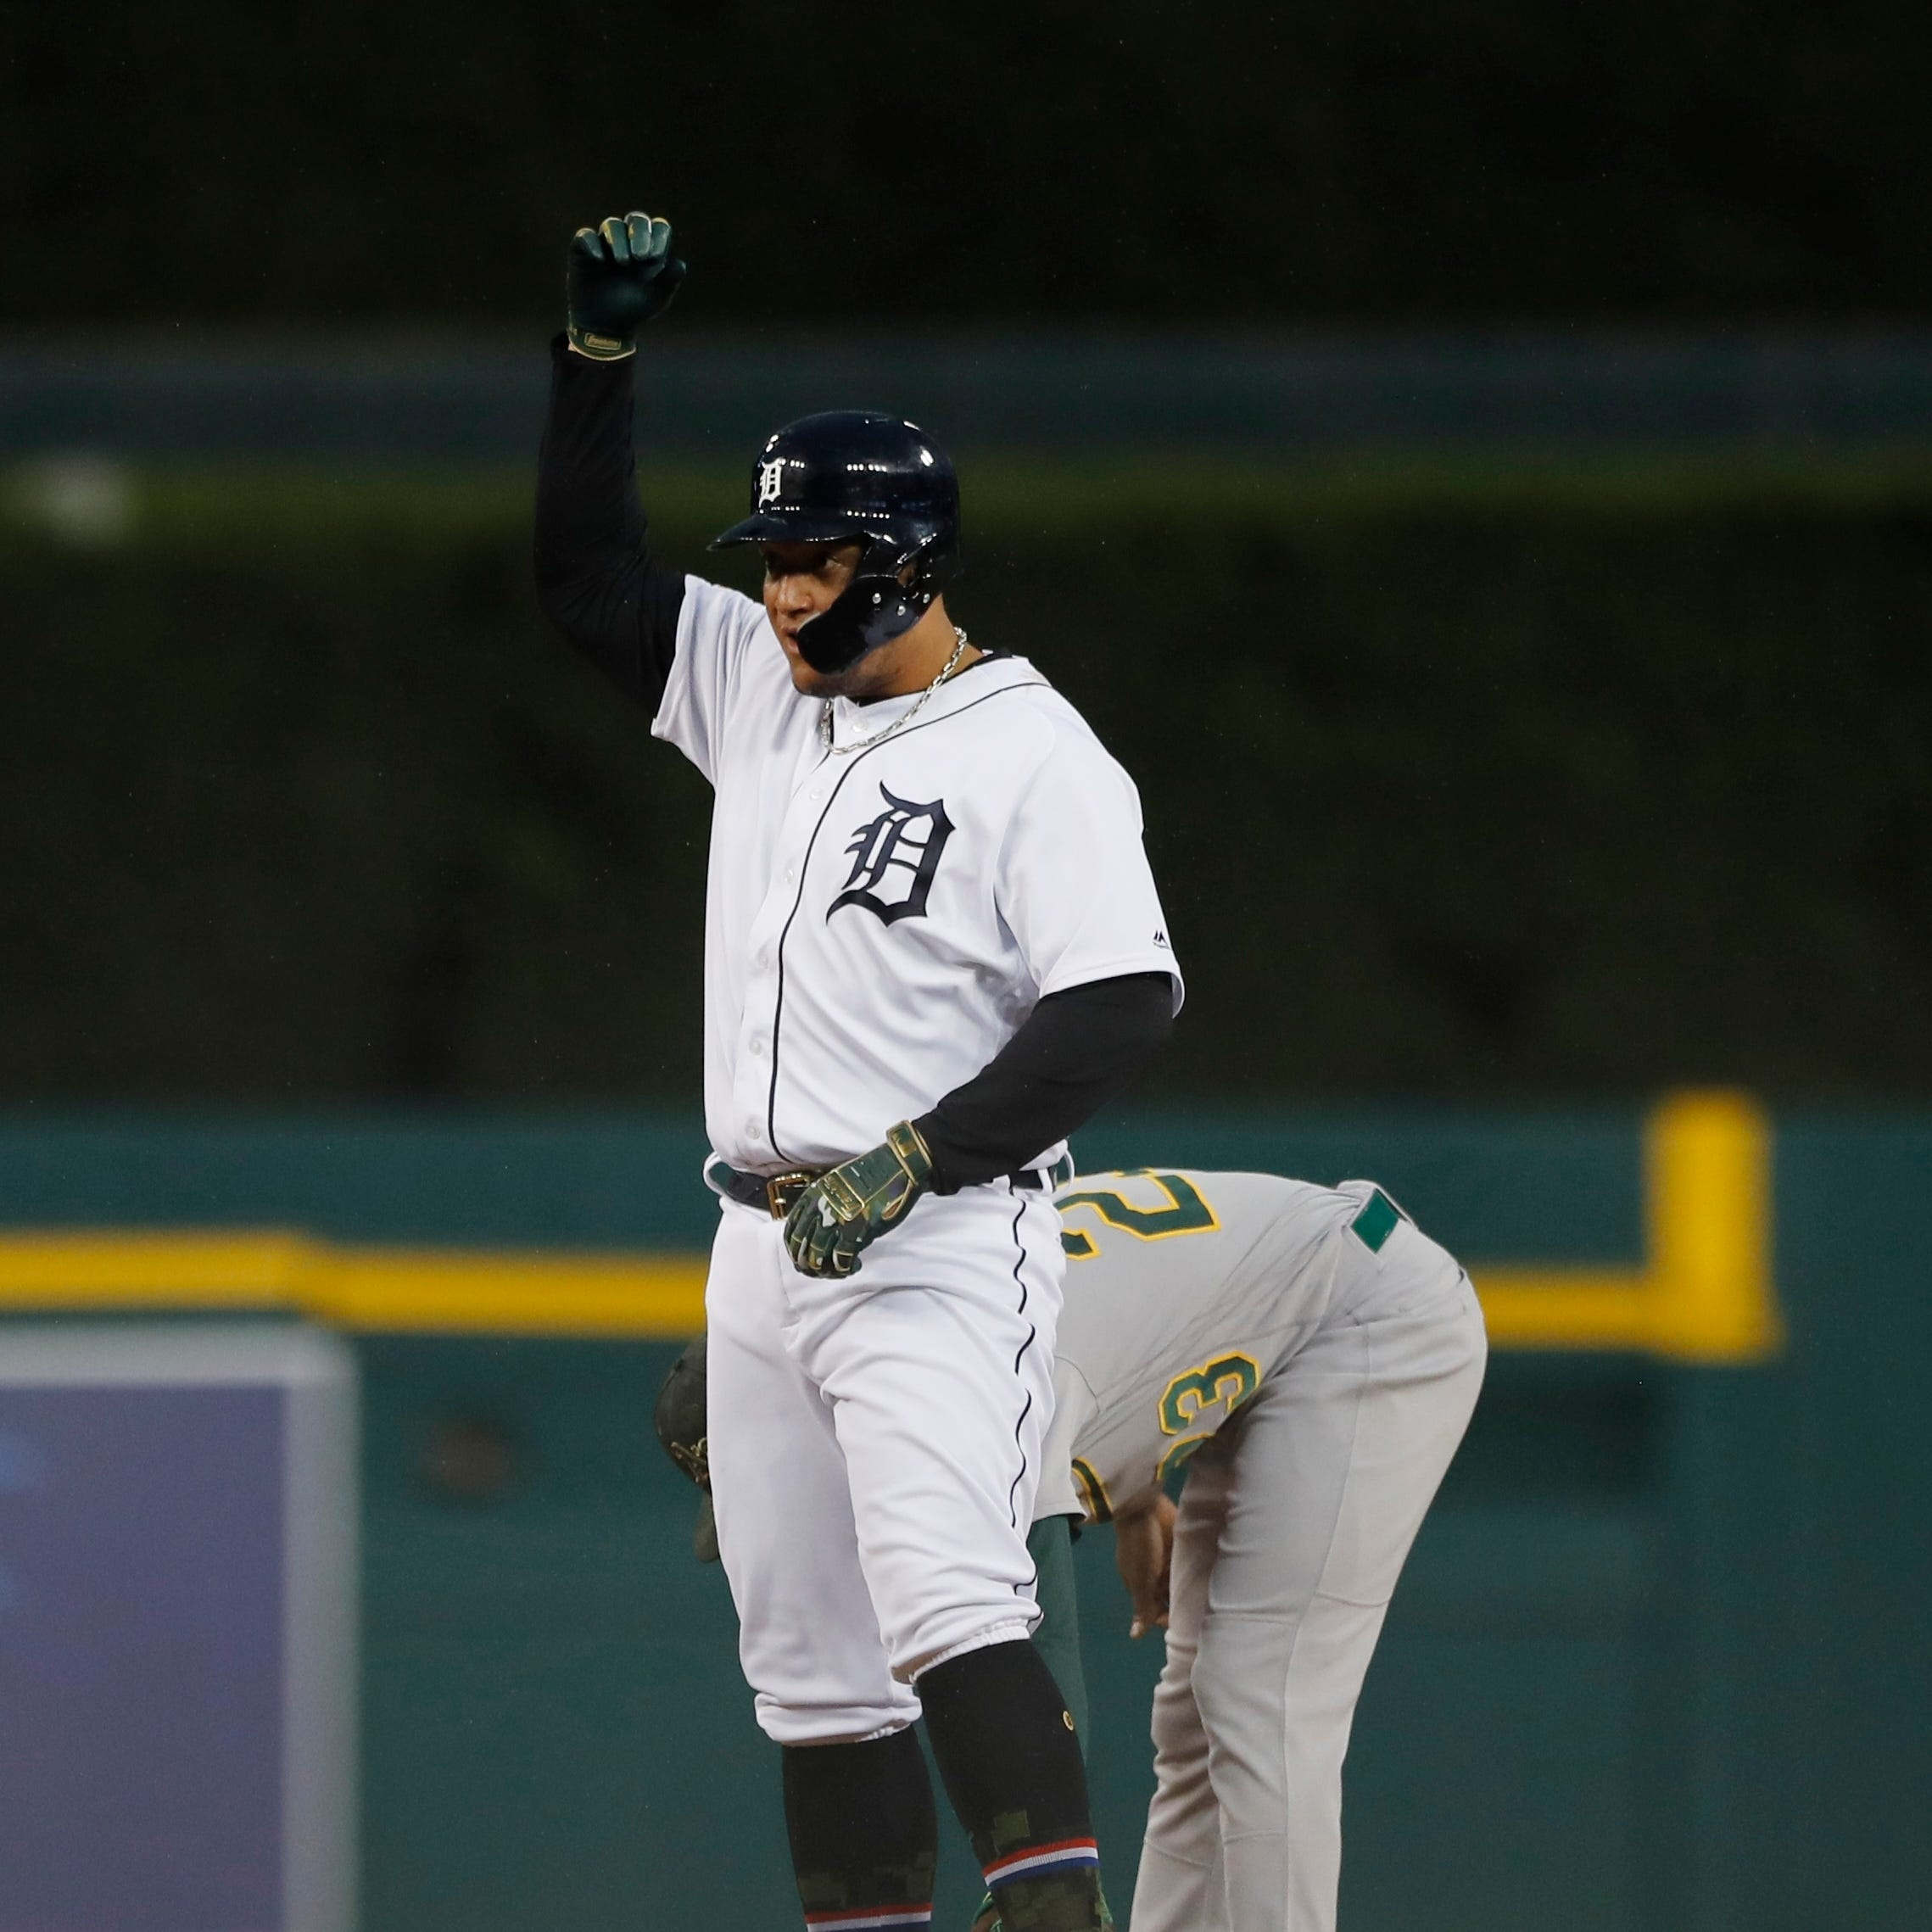 Tigers lose 5th straight, Miguel Cabrera ties Lou Gehrig on hits list